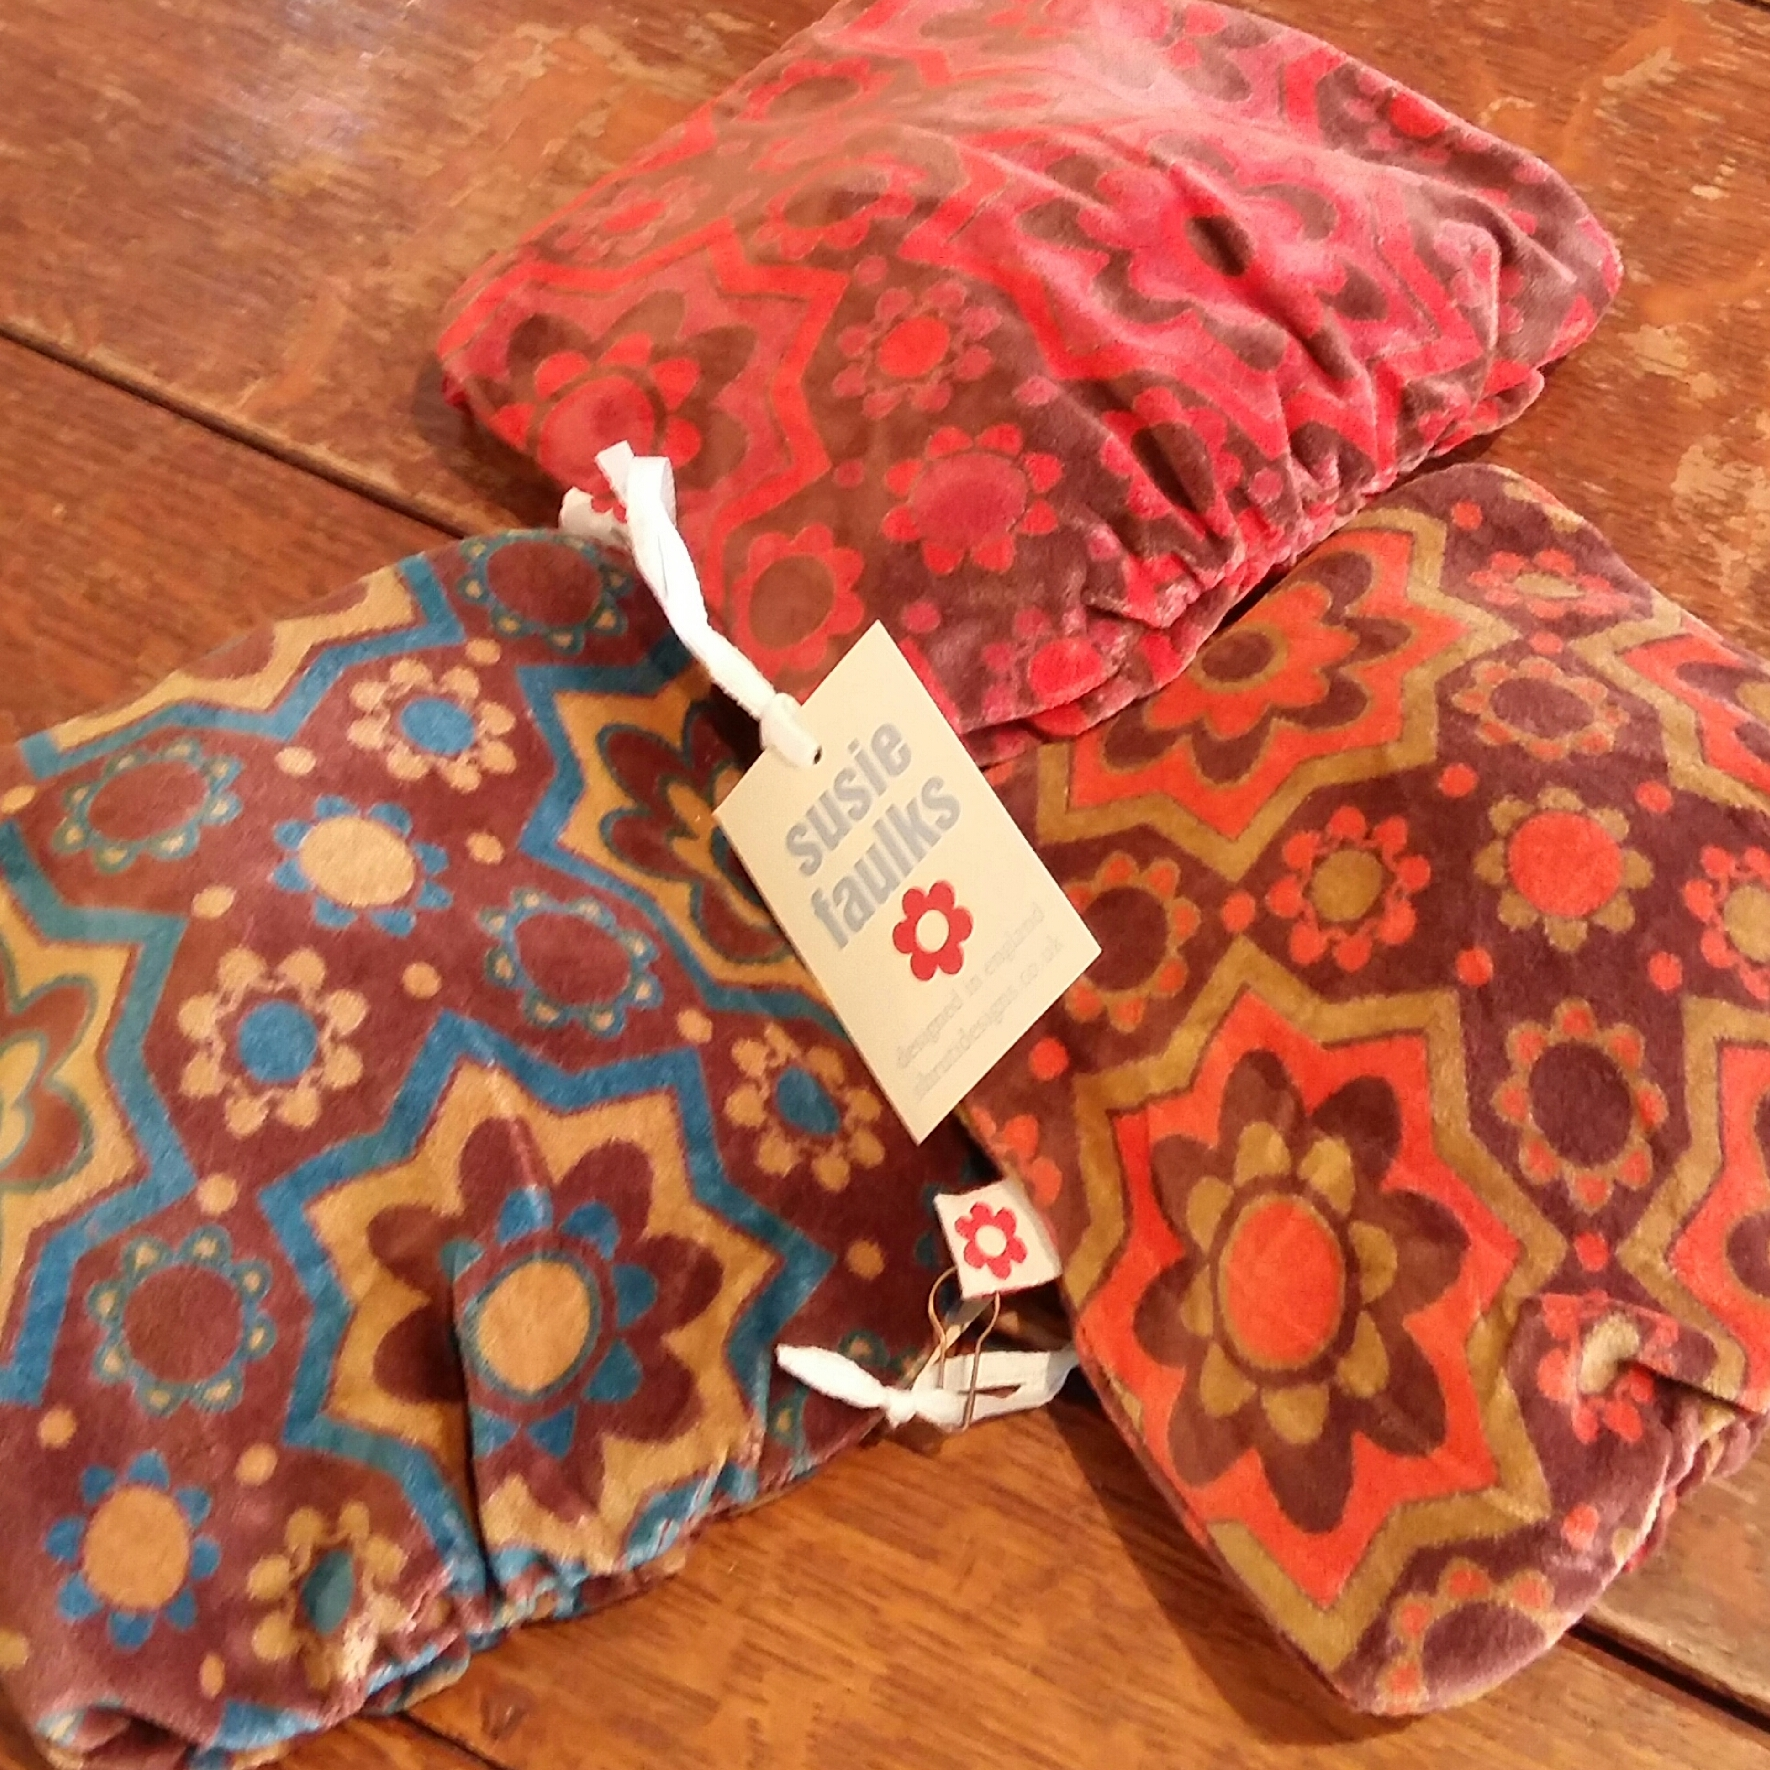 Retro printed purses make great stocking fillers at only £5 each and come in three colours